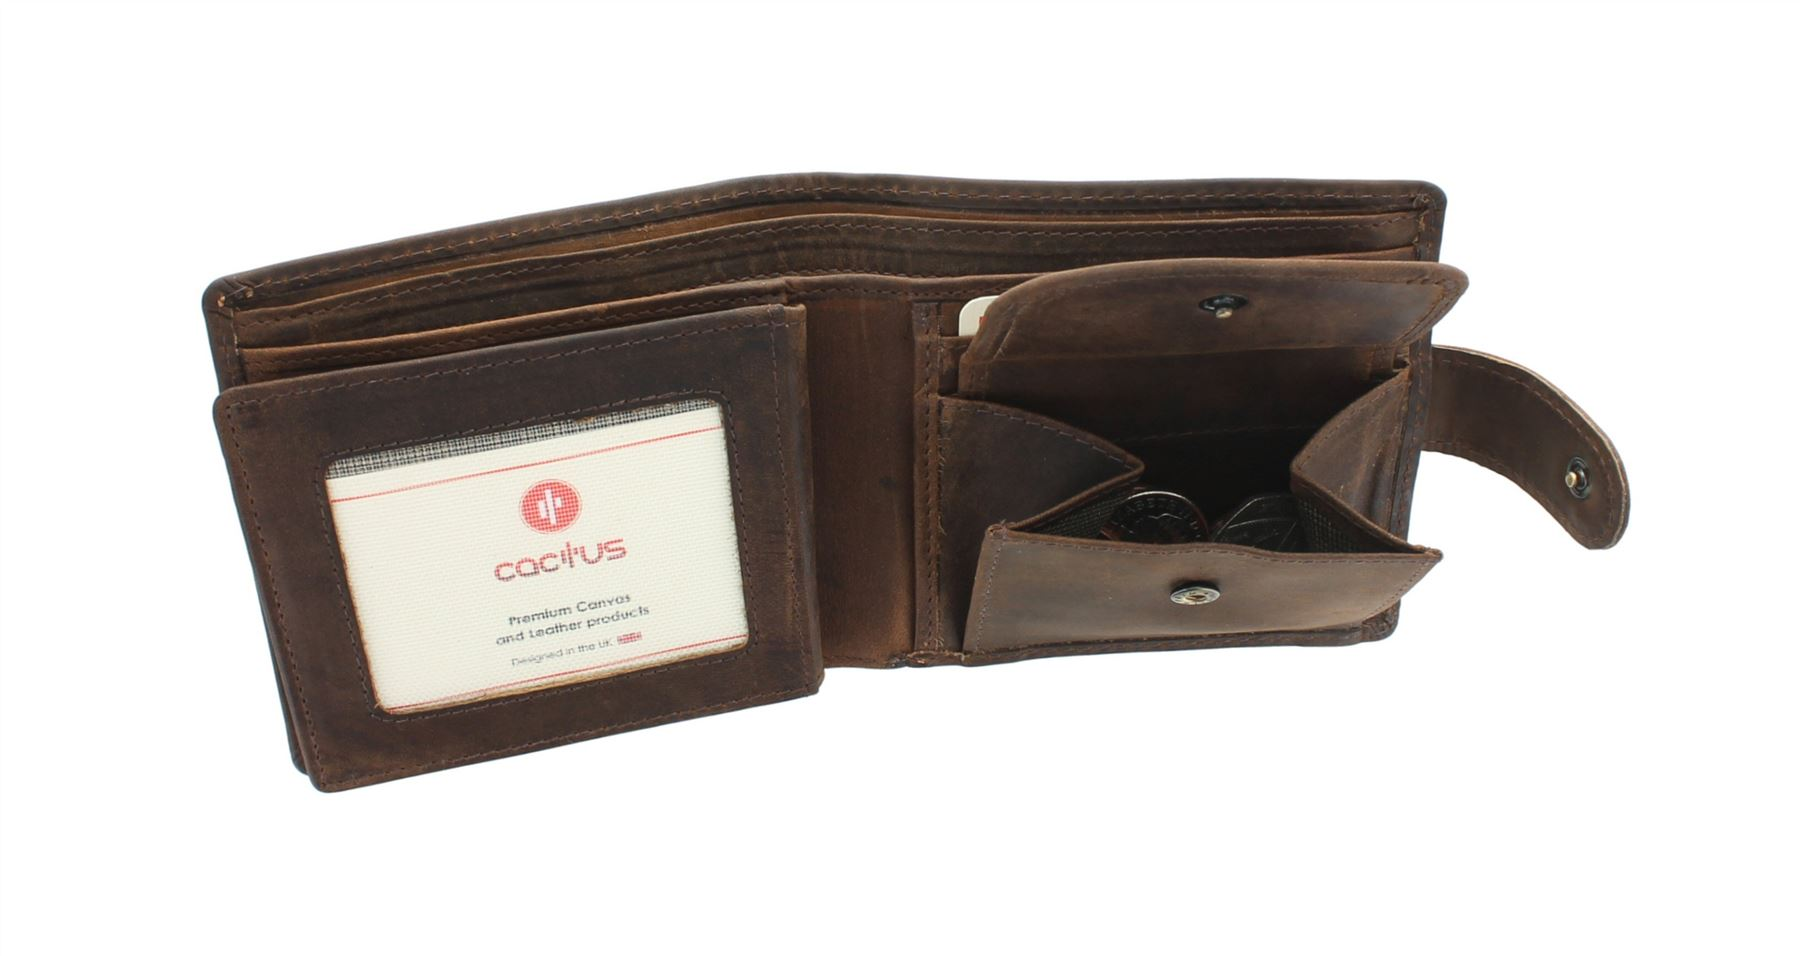 CACTUS Bi-Fold Oiled Leather Wallet With RFID Protection 185/_81